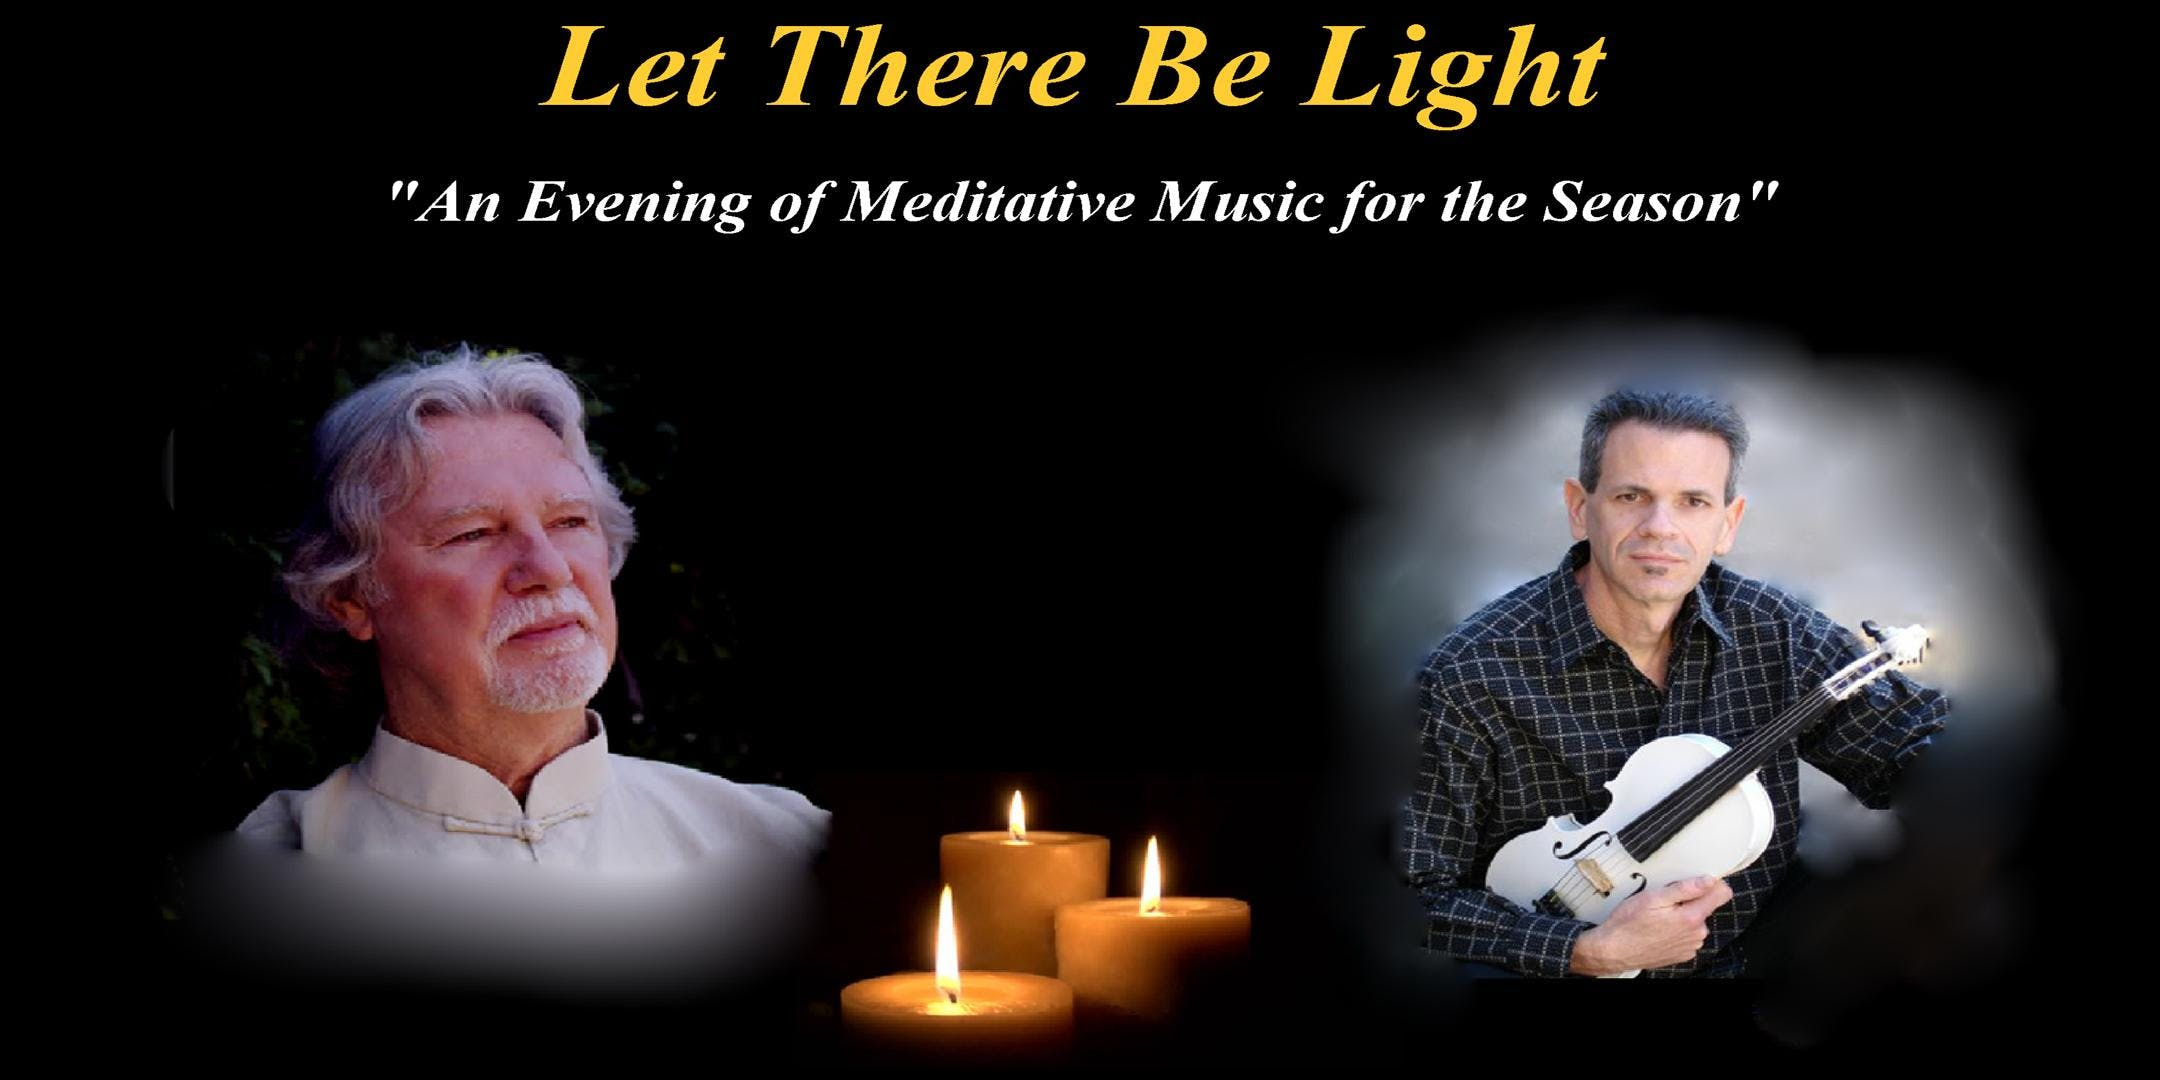 Let There Be Light: An Evening of Meditative